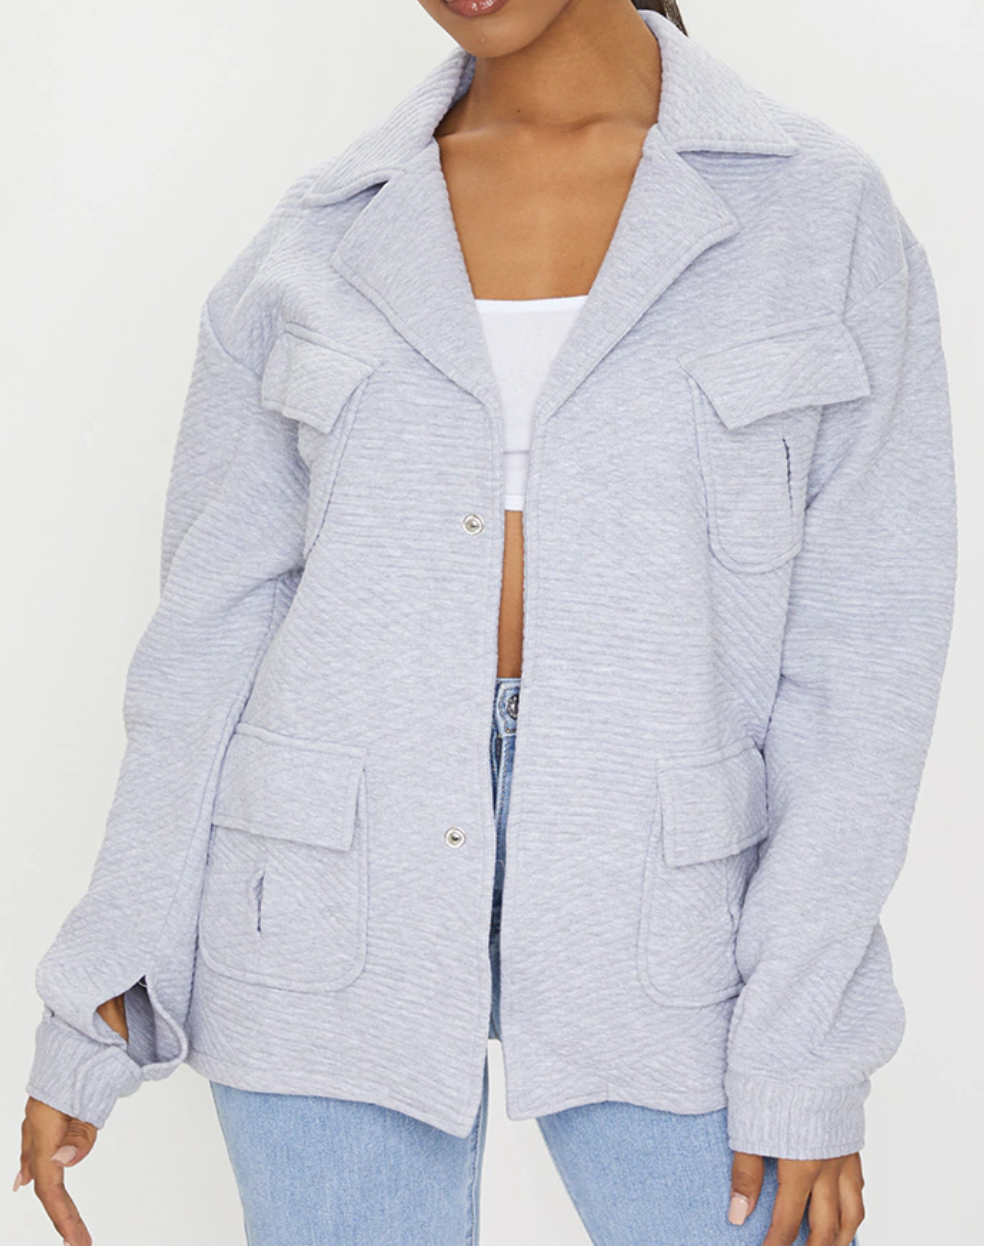 Grey waffle texture oversized shacket from Pretty Little Thing